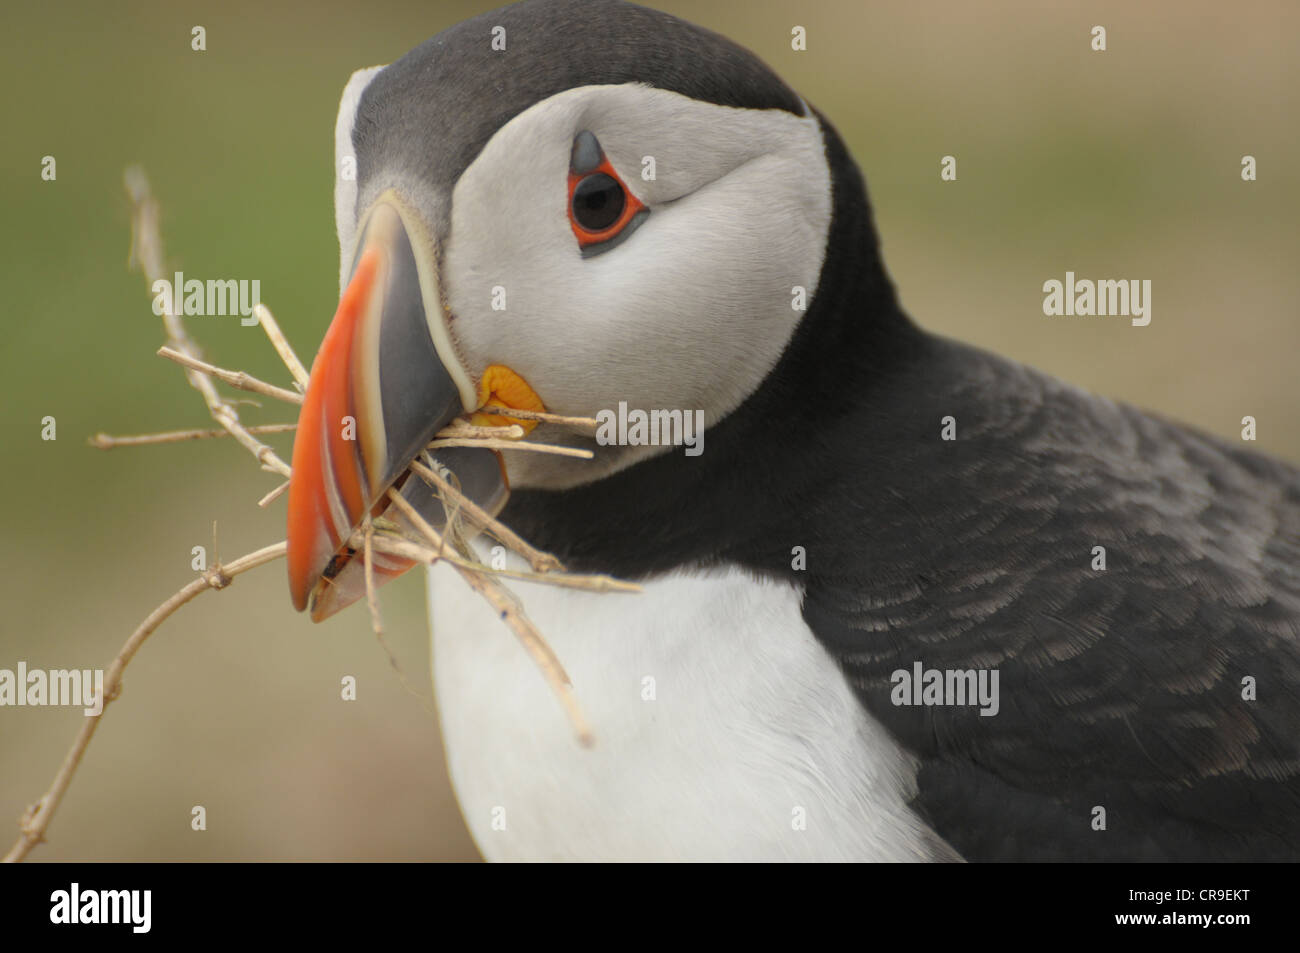 Puffin, Fratercula arctica, with dead grass in beak. - Stock Image